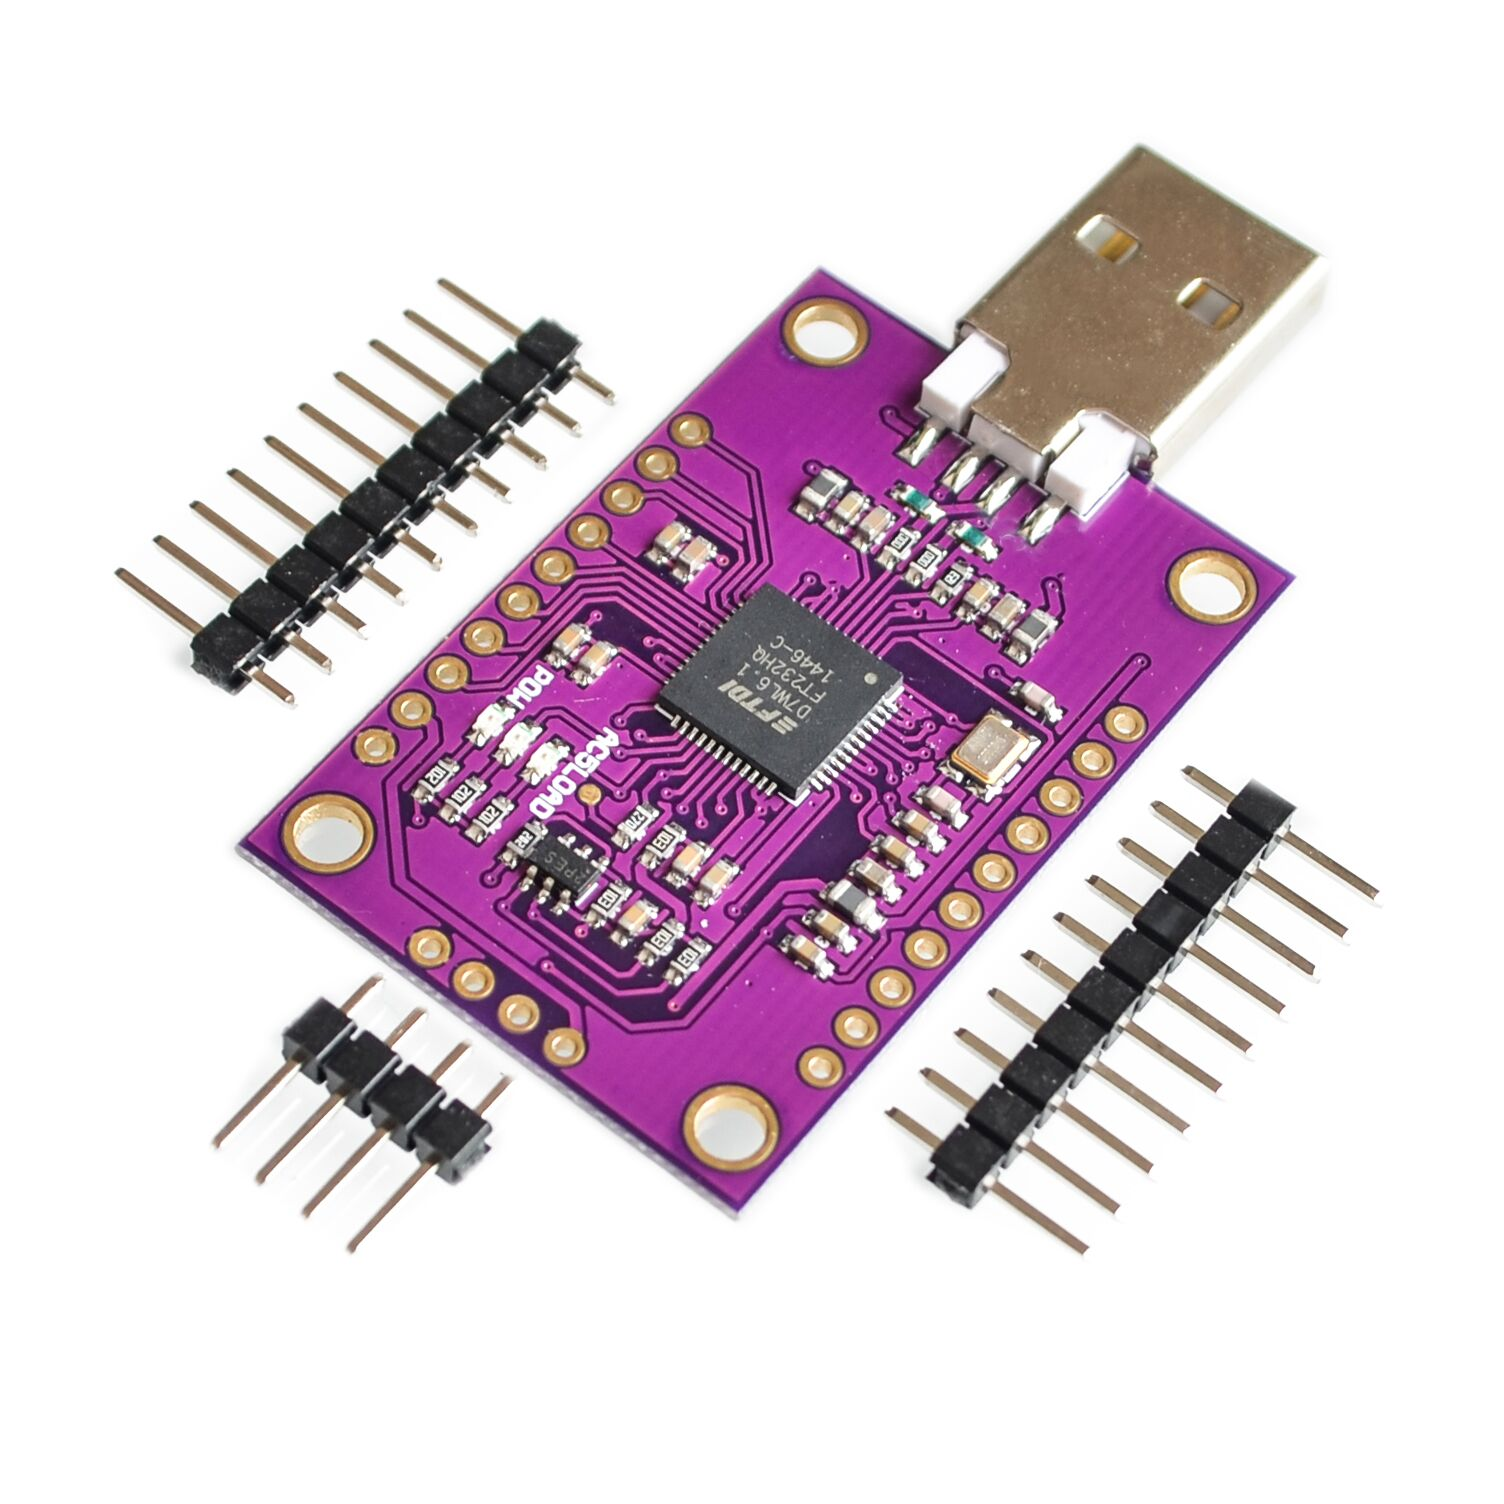 NEW-FT232H-Multifunction-High-Speed-USB-to-JTAG-UART-FIFO-SPI-I2C-Module